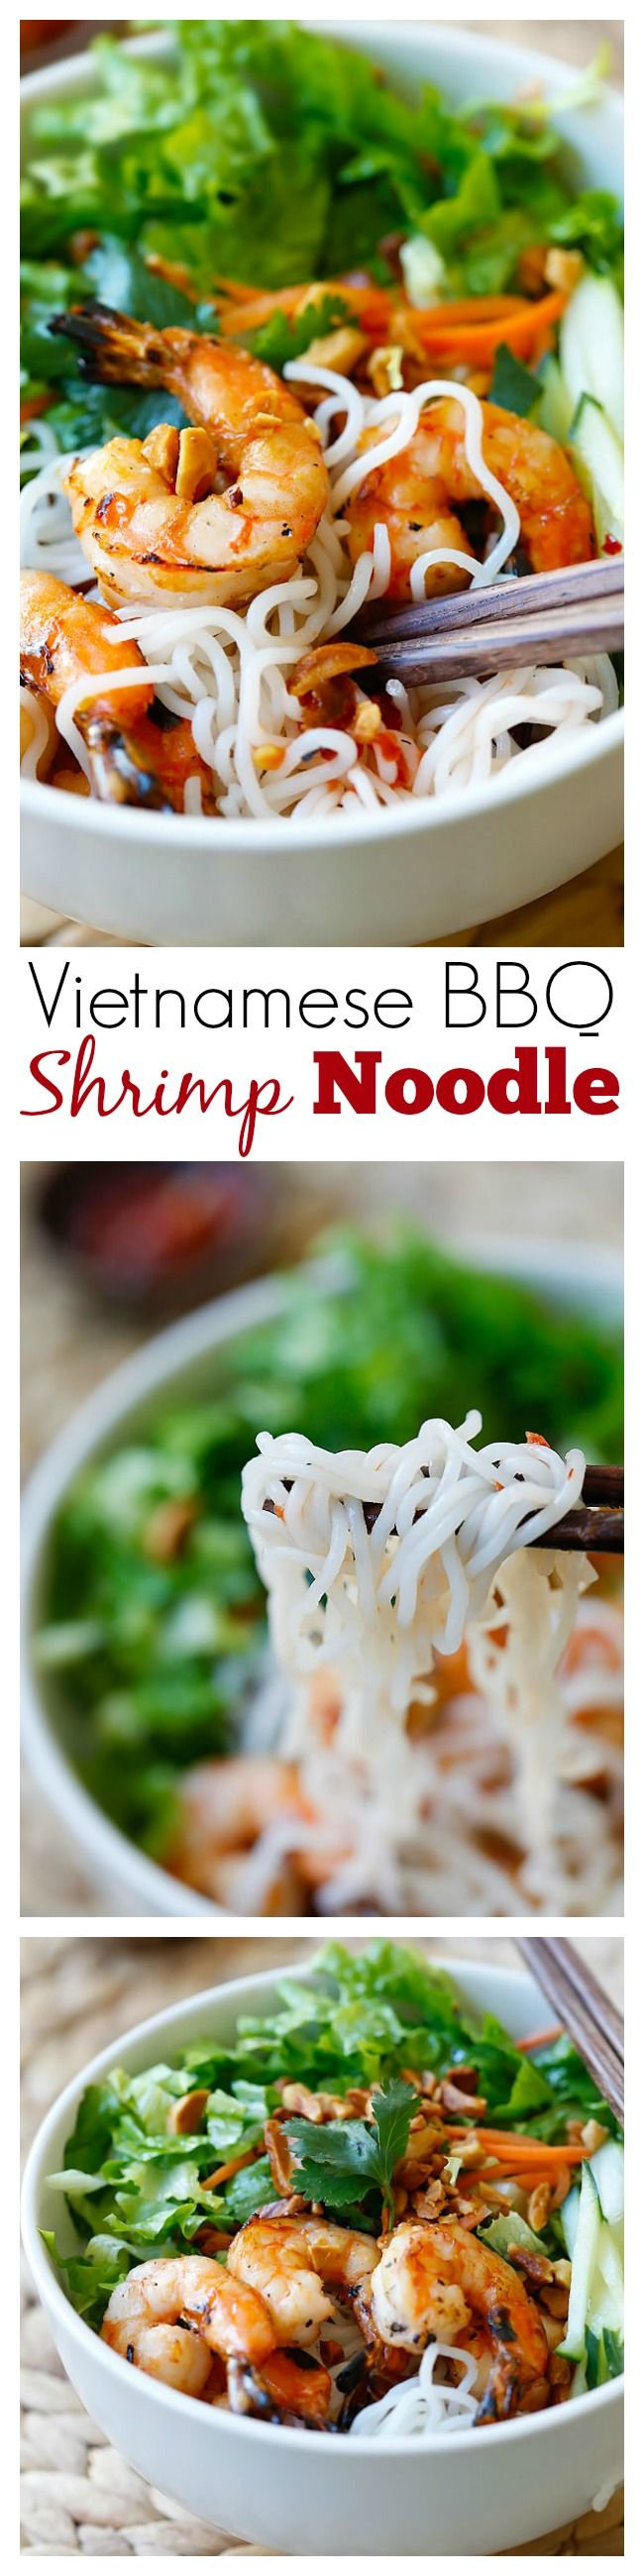 Vietnam - BBQ Shrimp Vermicelli or Bun Tom Heo Nuong is a delicious and healthy noodle dish with shrimp and lots of vegetables, served with a sauce | rasamalaysia.com